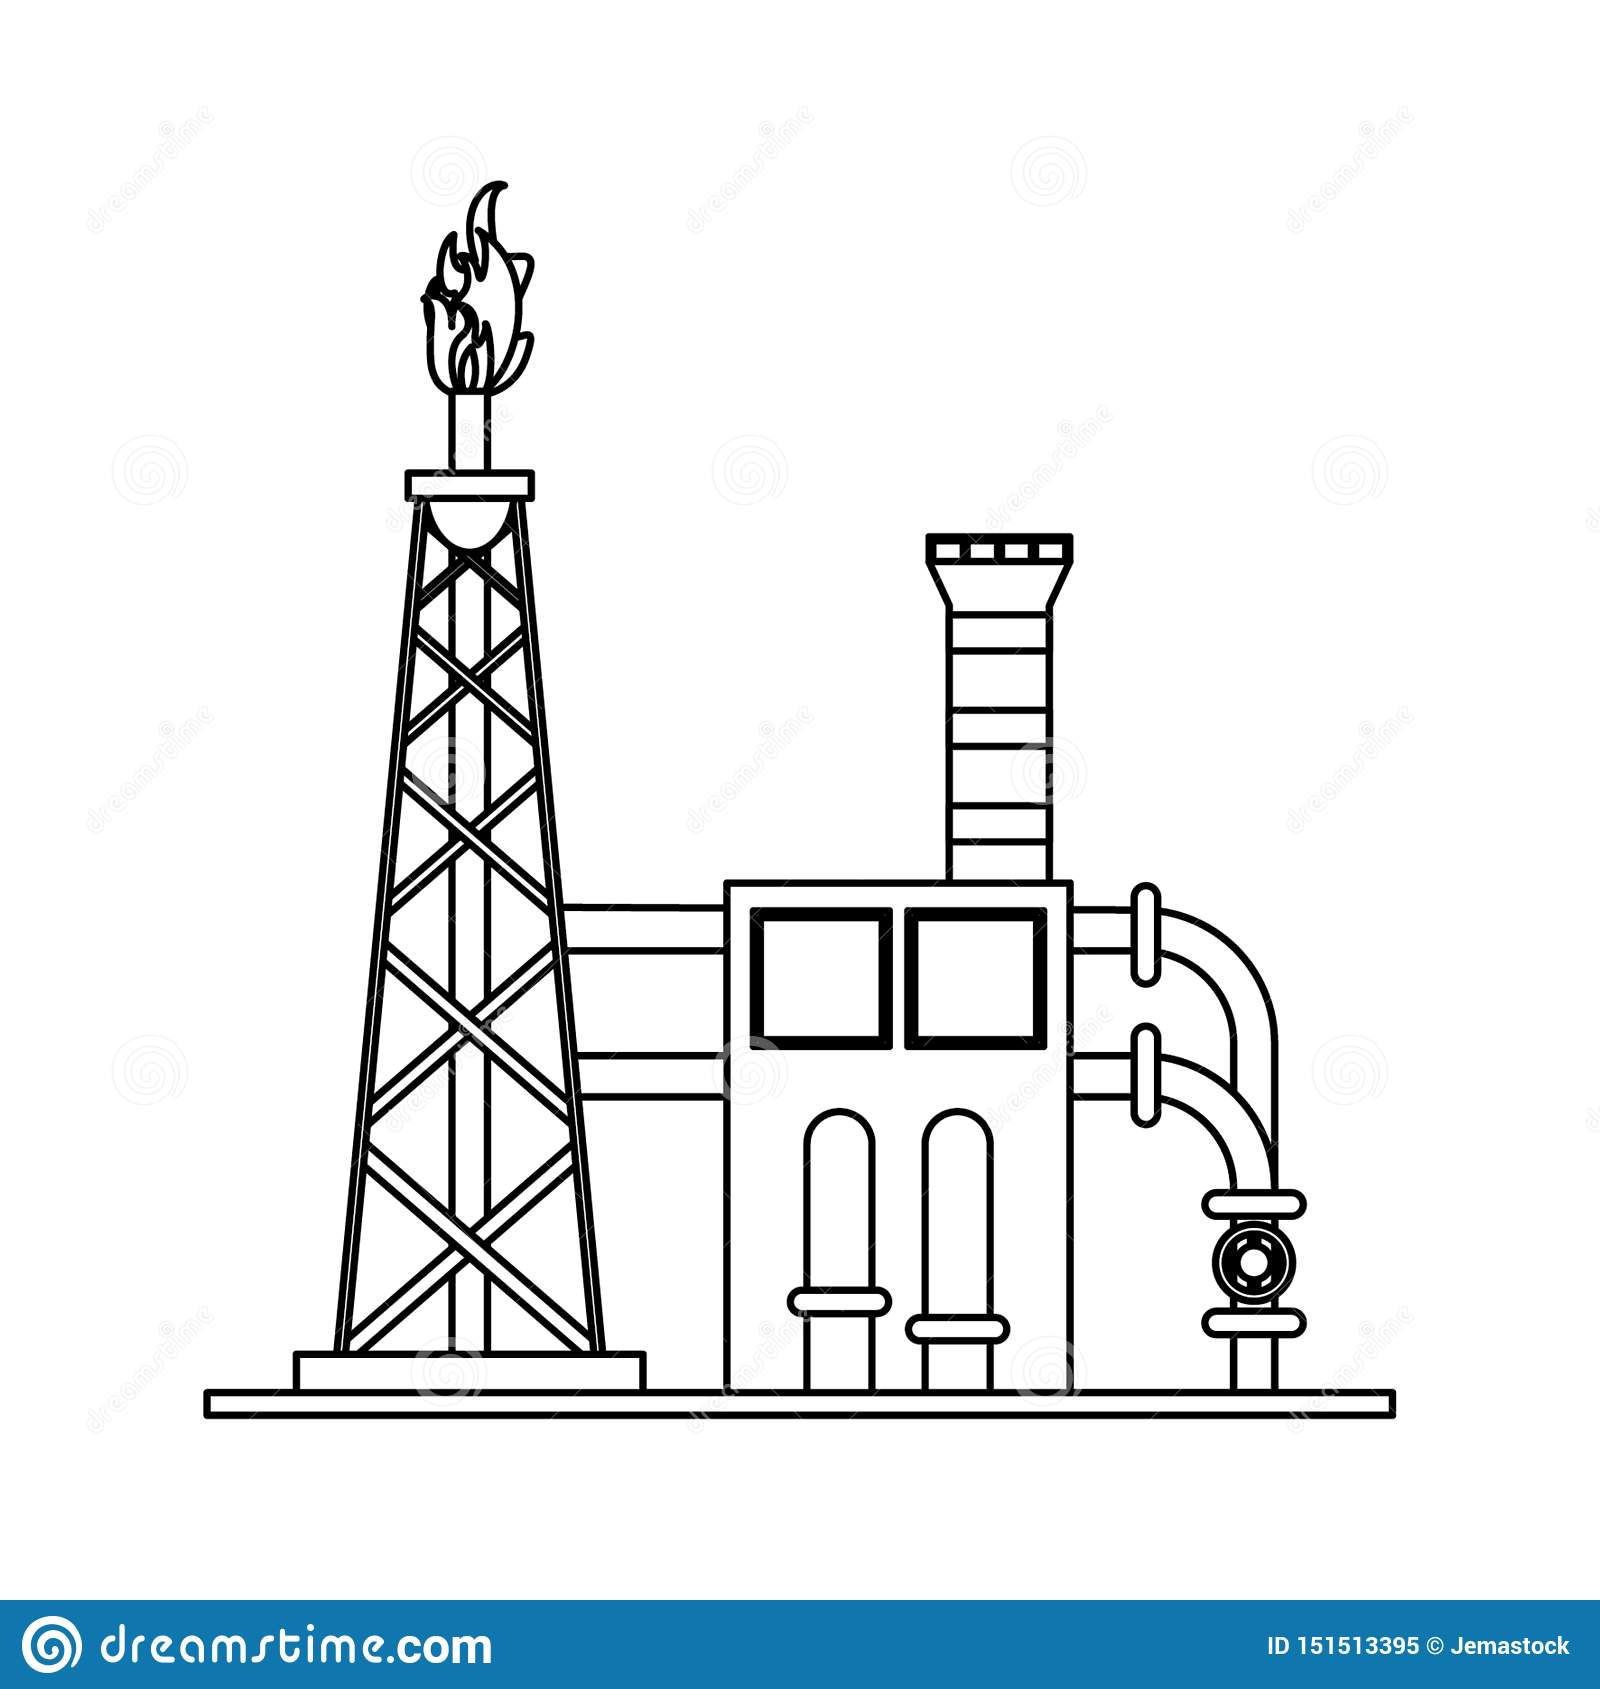 Petroleum Oil Refinery Plant With Machinery In Black And